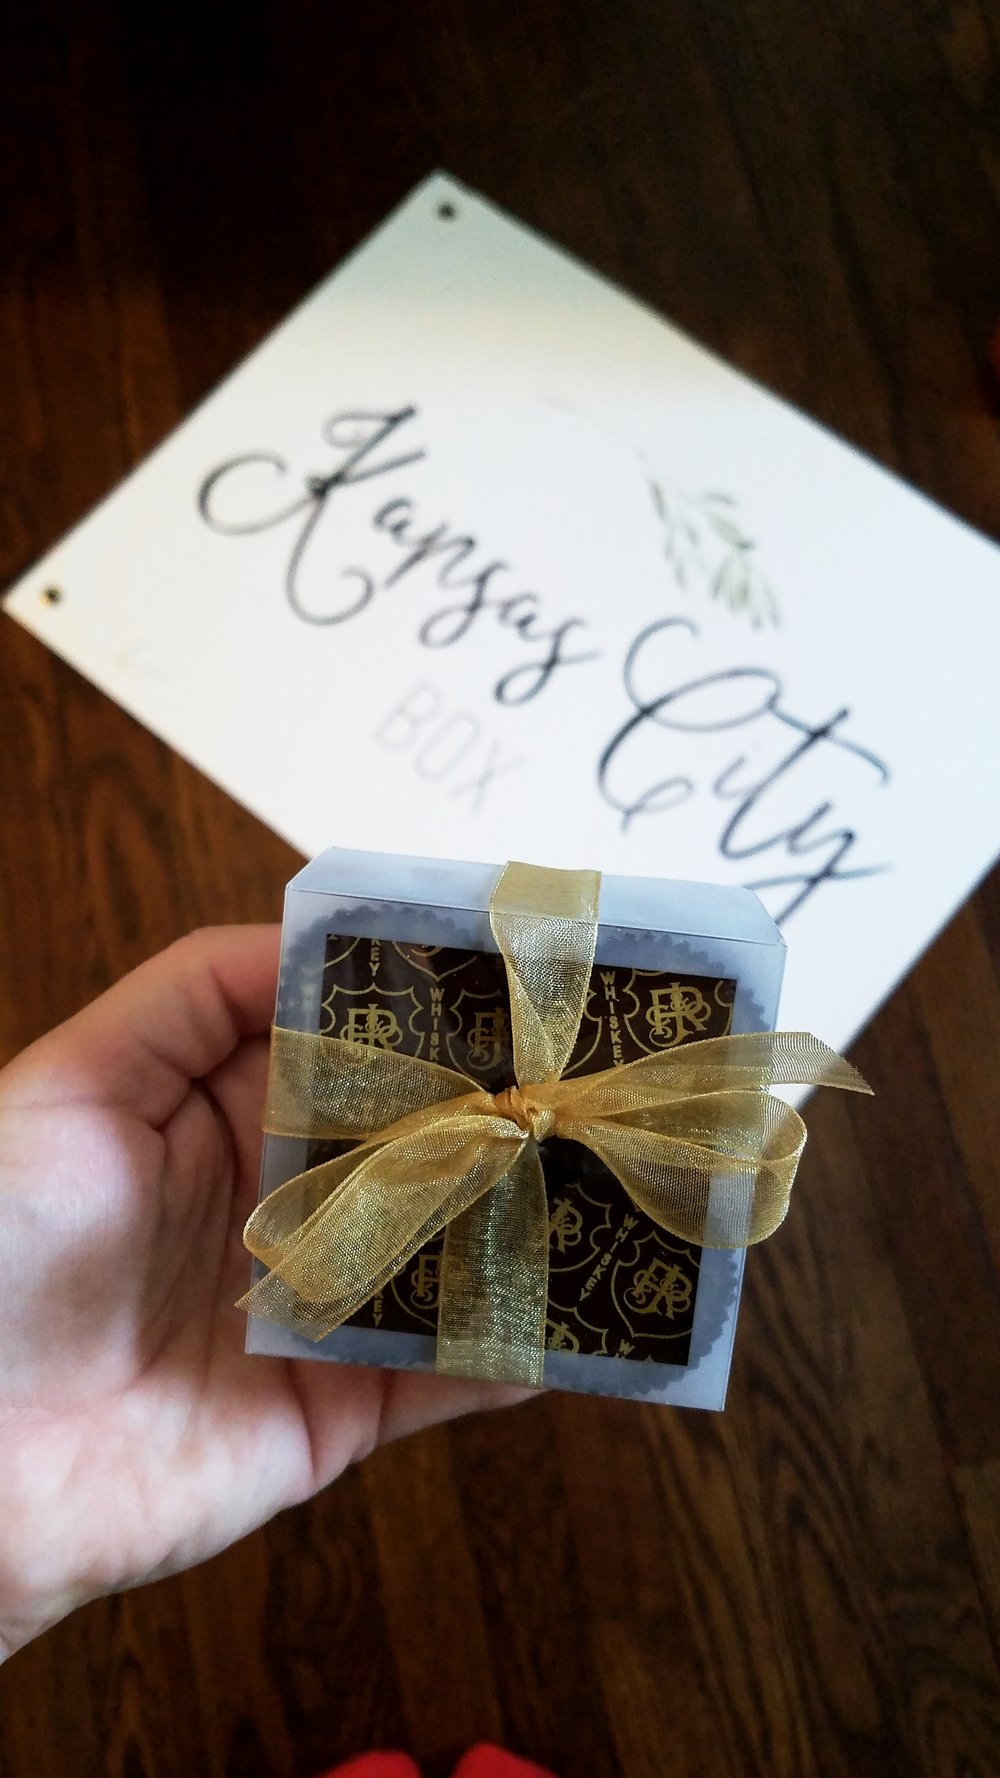 J. Rieger Co. Whiskey Truffles   photo credit//  @kc_local   KANSAS CITY, MISSOURI